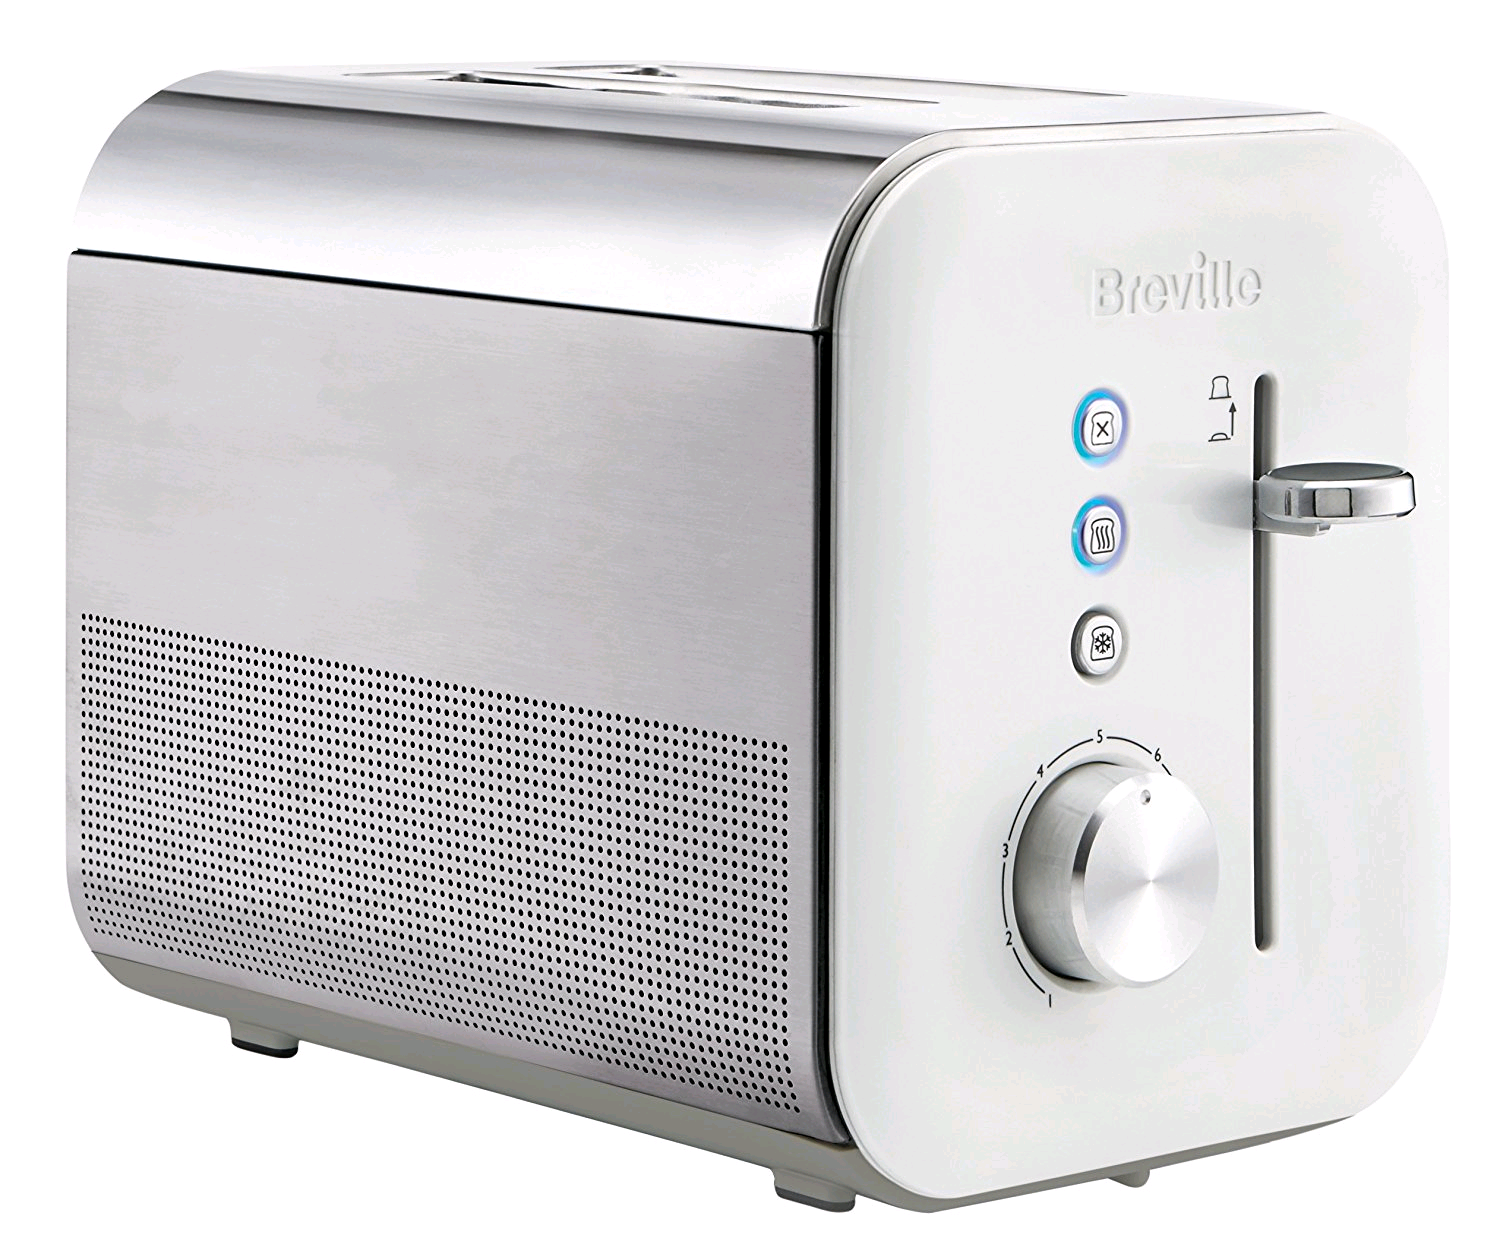 Breville 2 Slice High Gloss Toaster in White